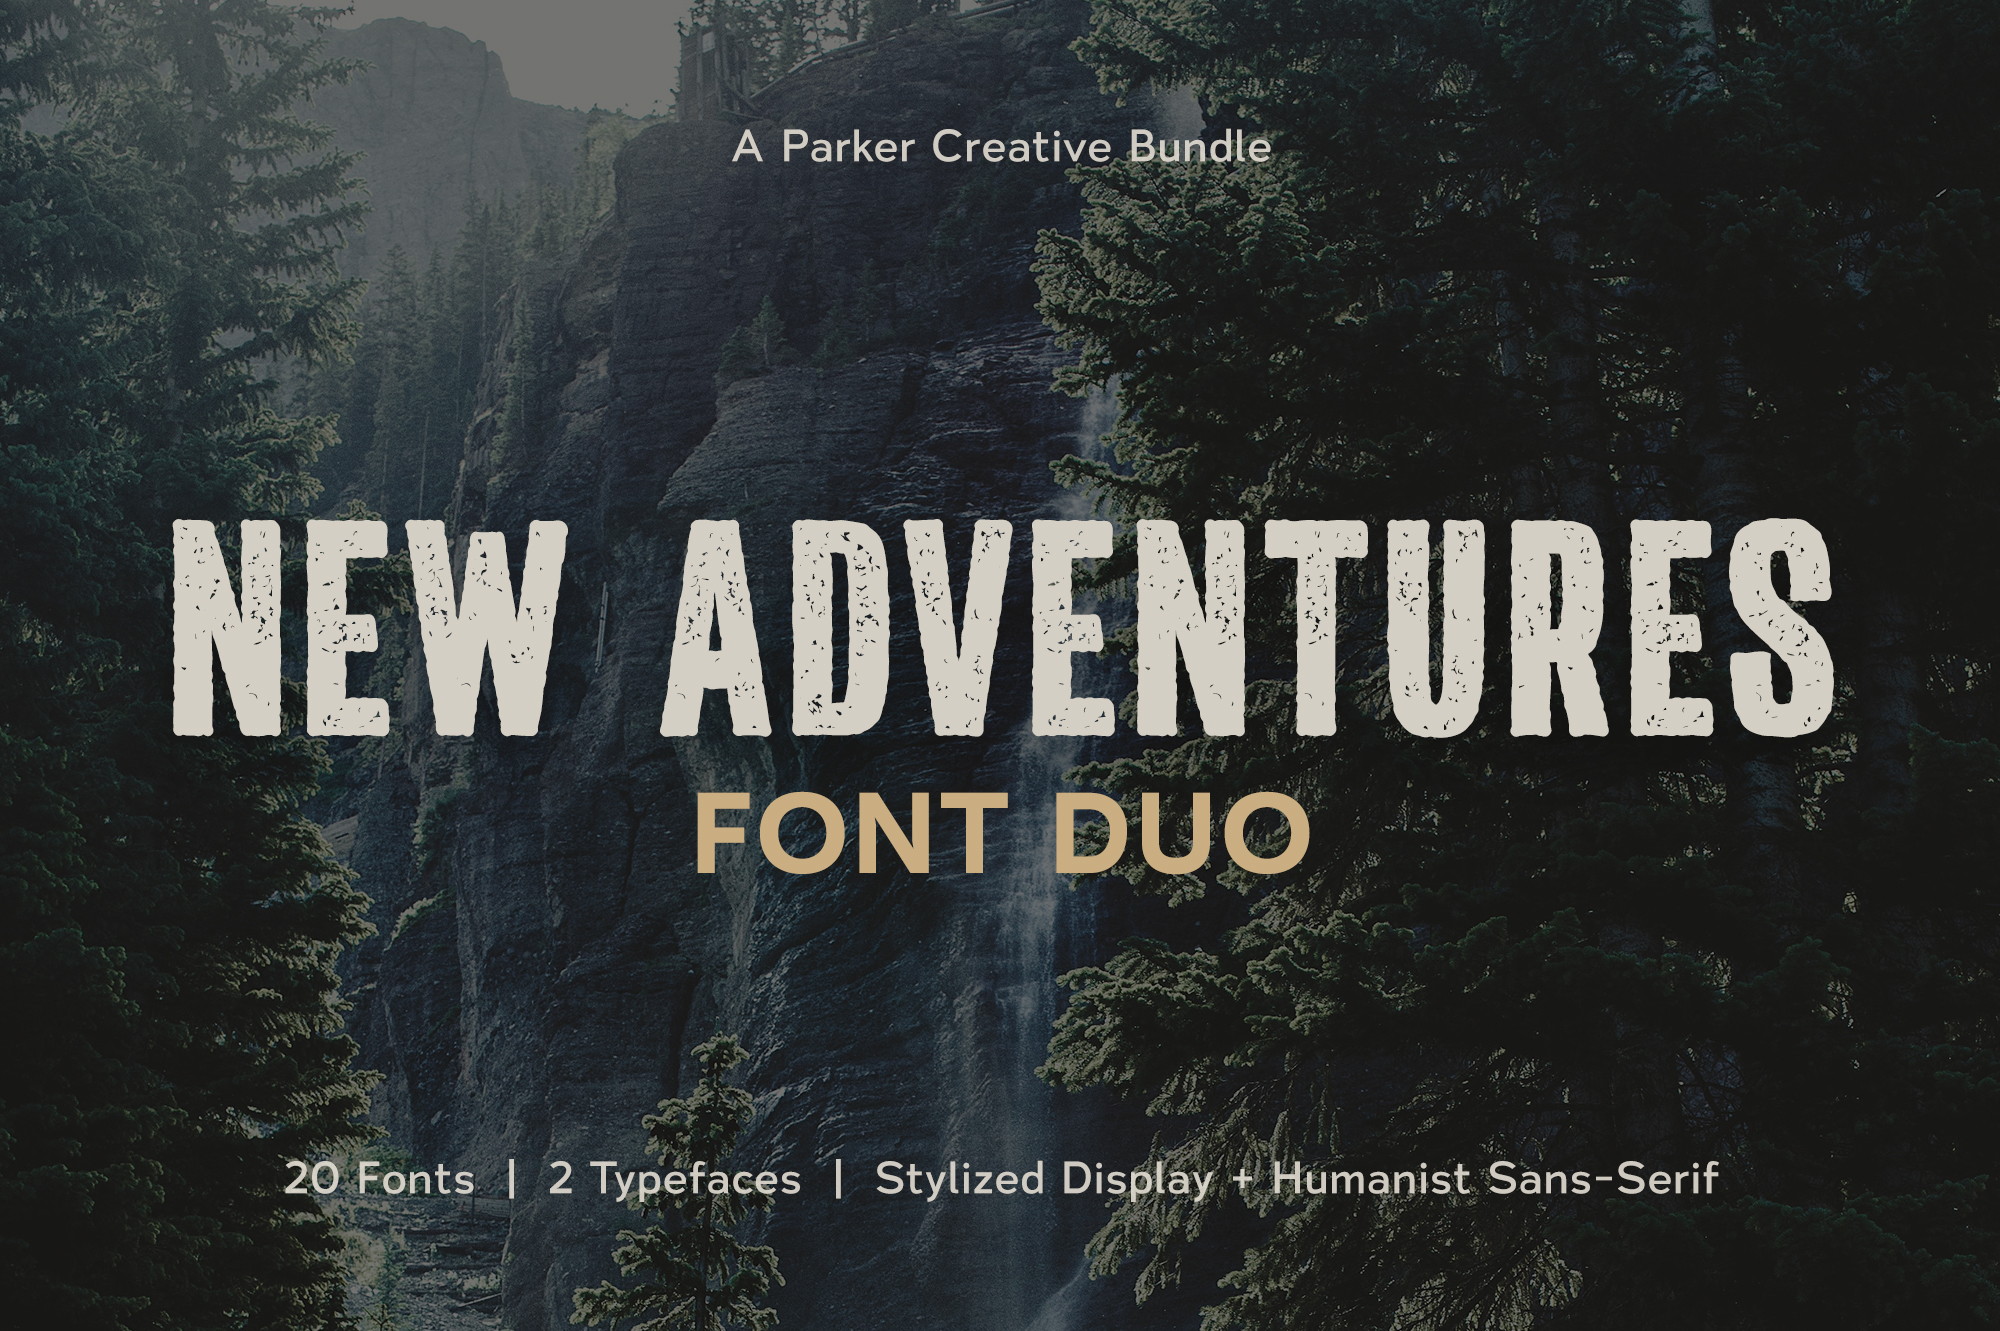 New Adventures | Font Duo by Parker Creative example image 1